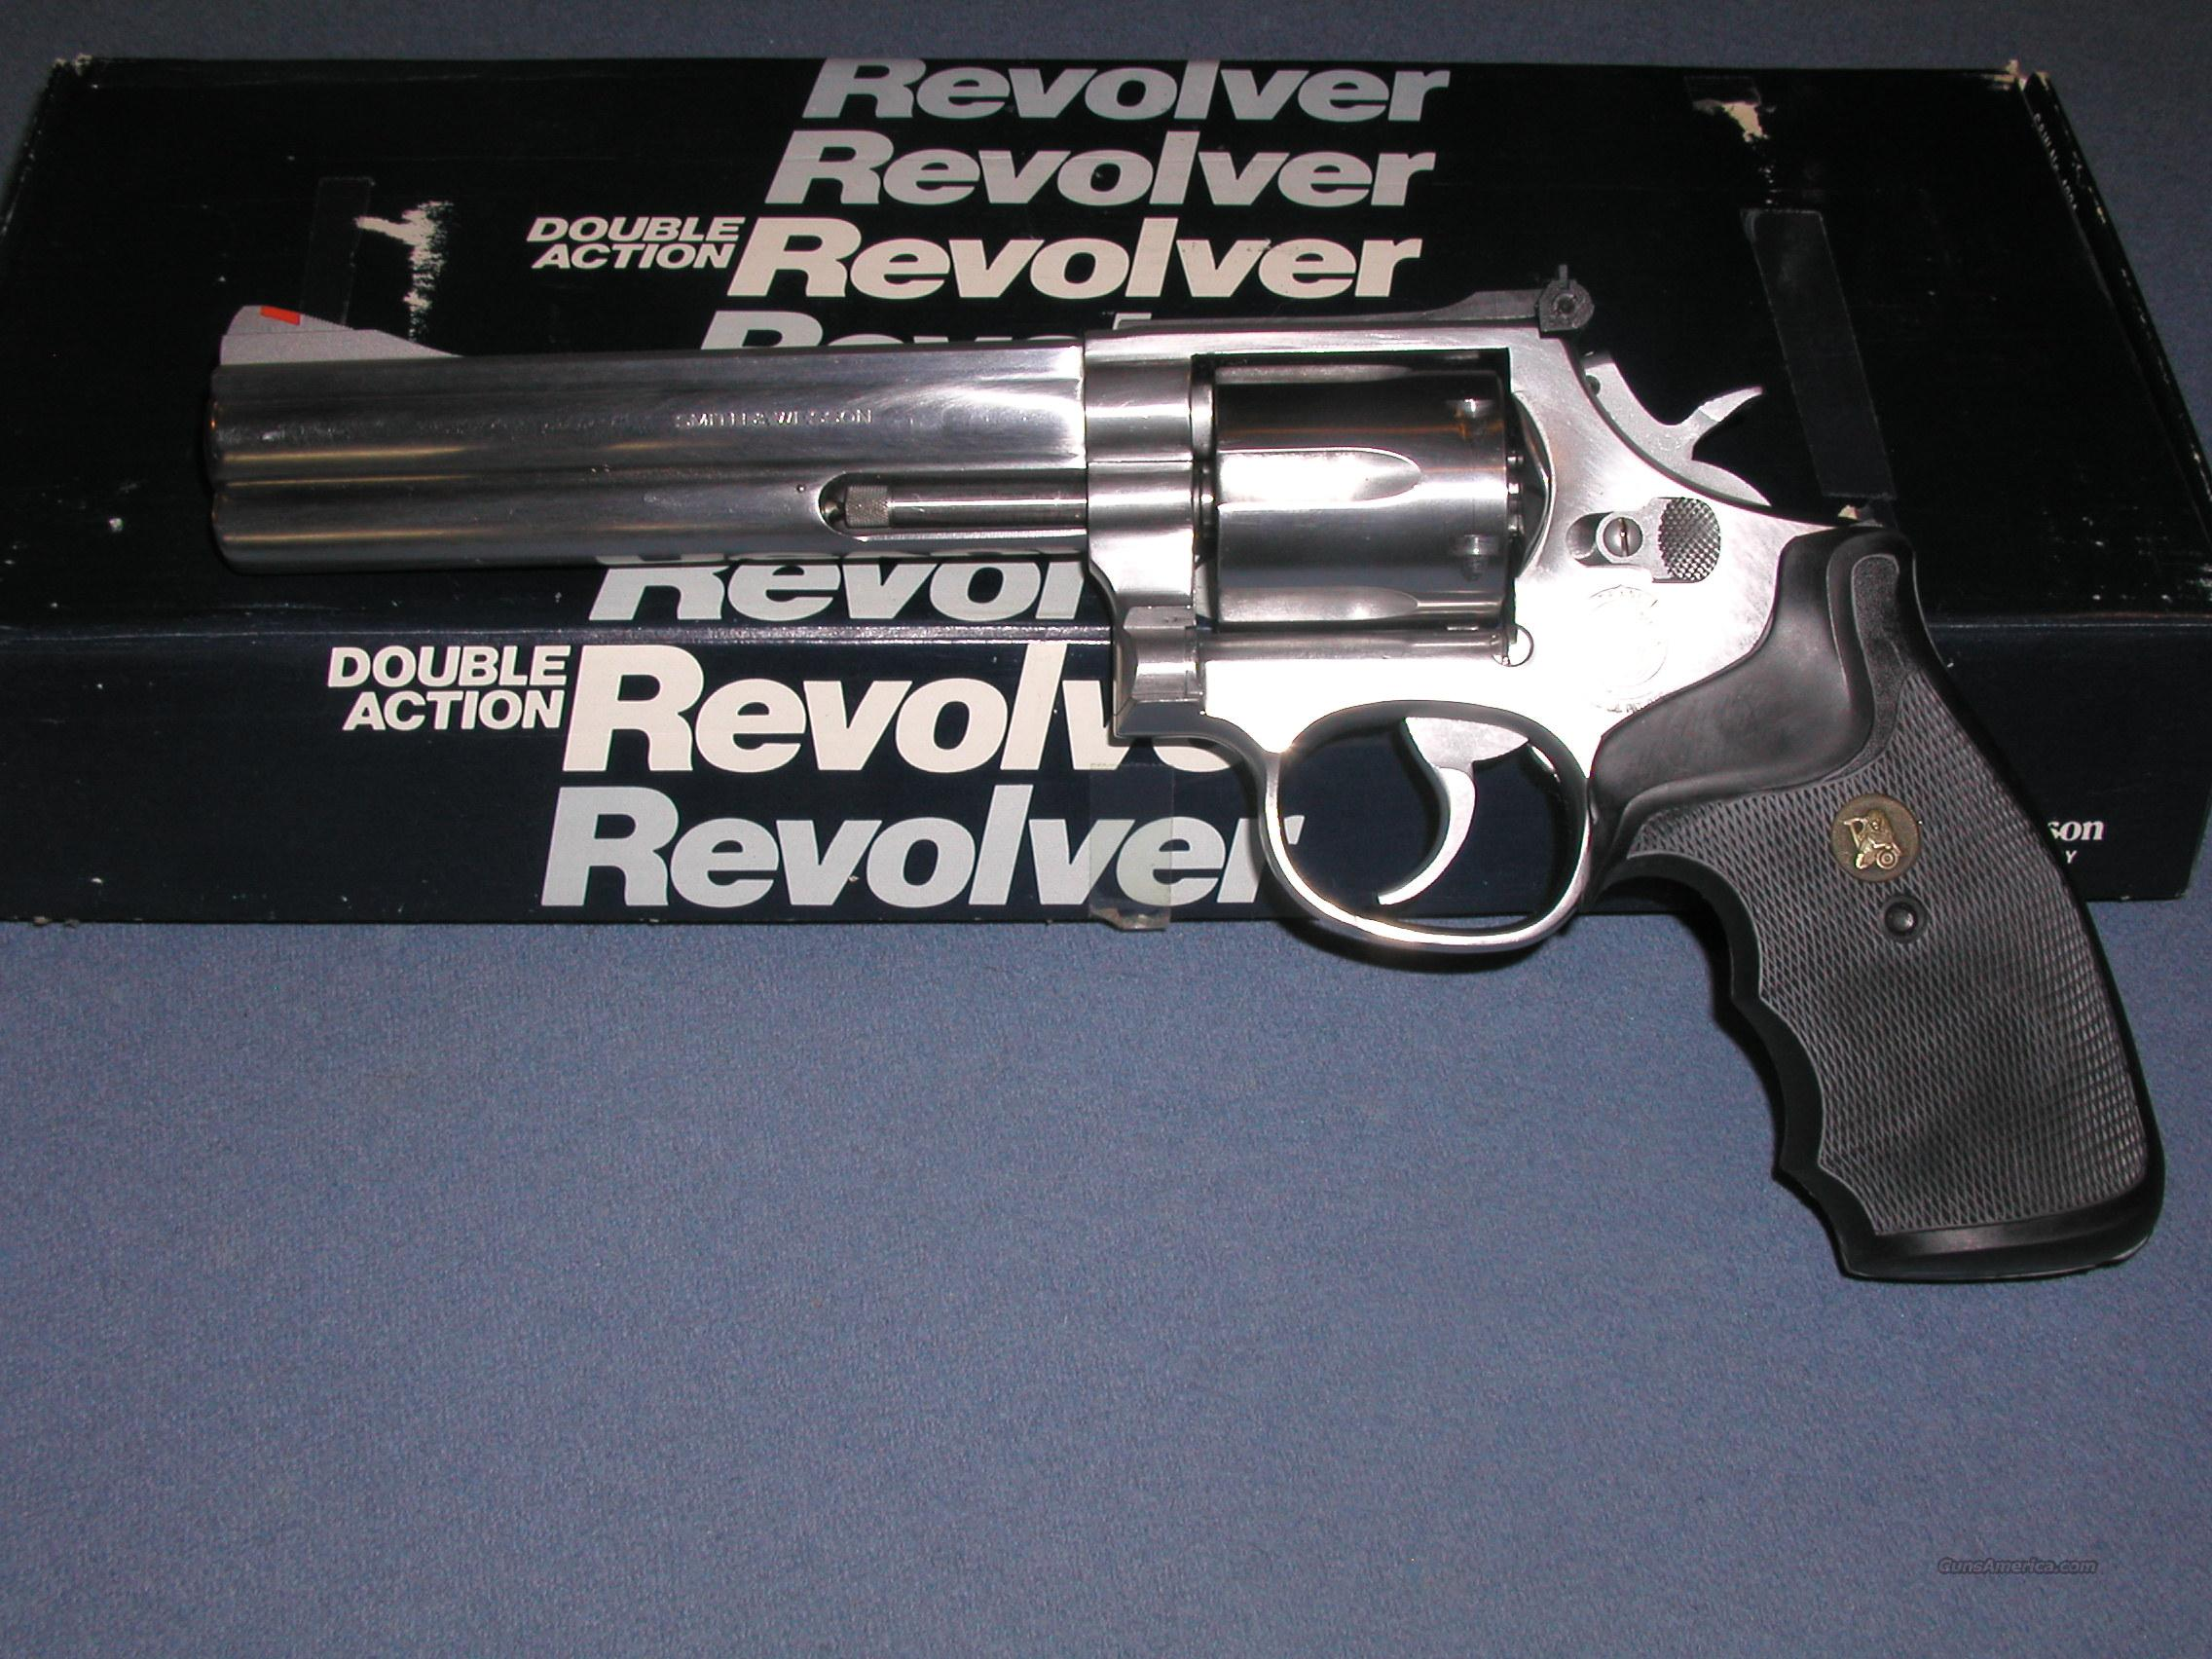 Smith&Wesson 686 Stainless with 6 inch barrel .357 Magnum  Guns > Pistols > Smith & Wesson Revolvers > Full Frame Revolver